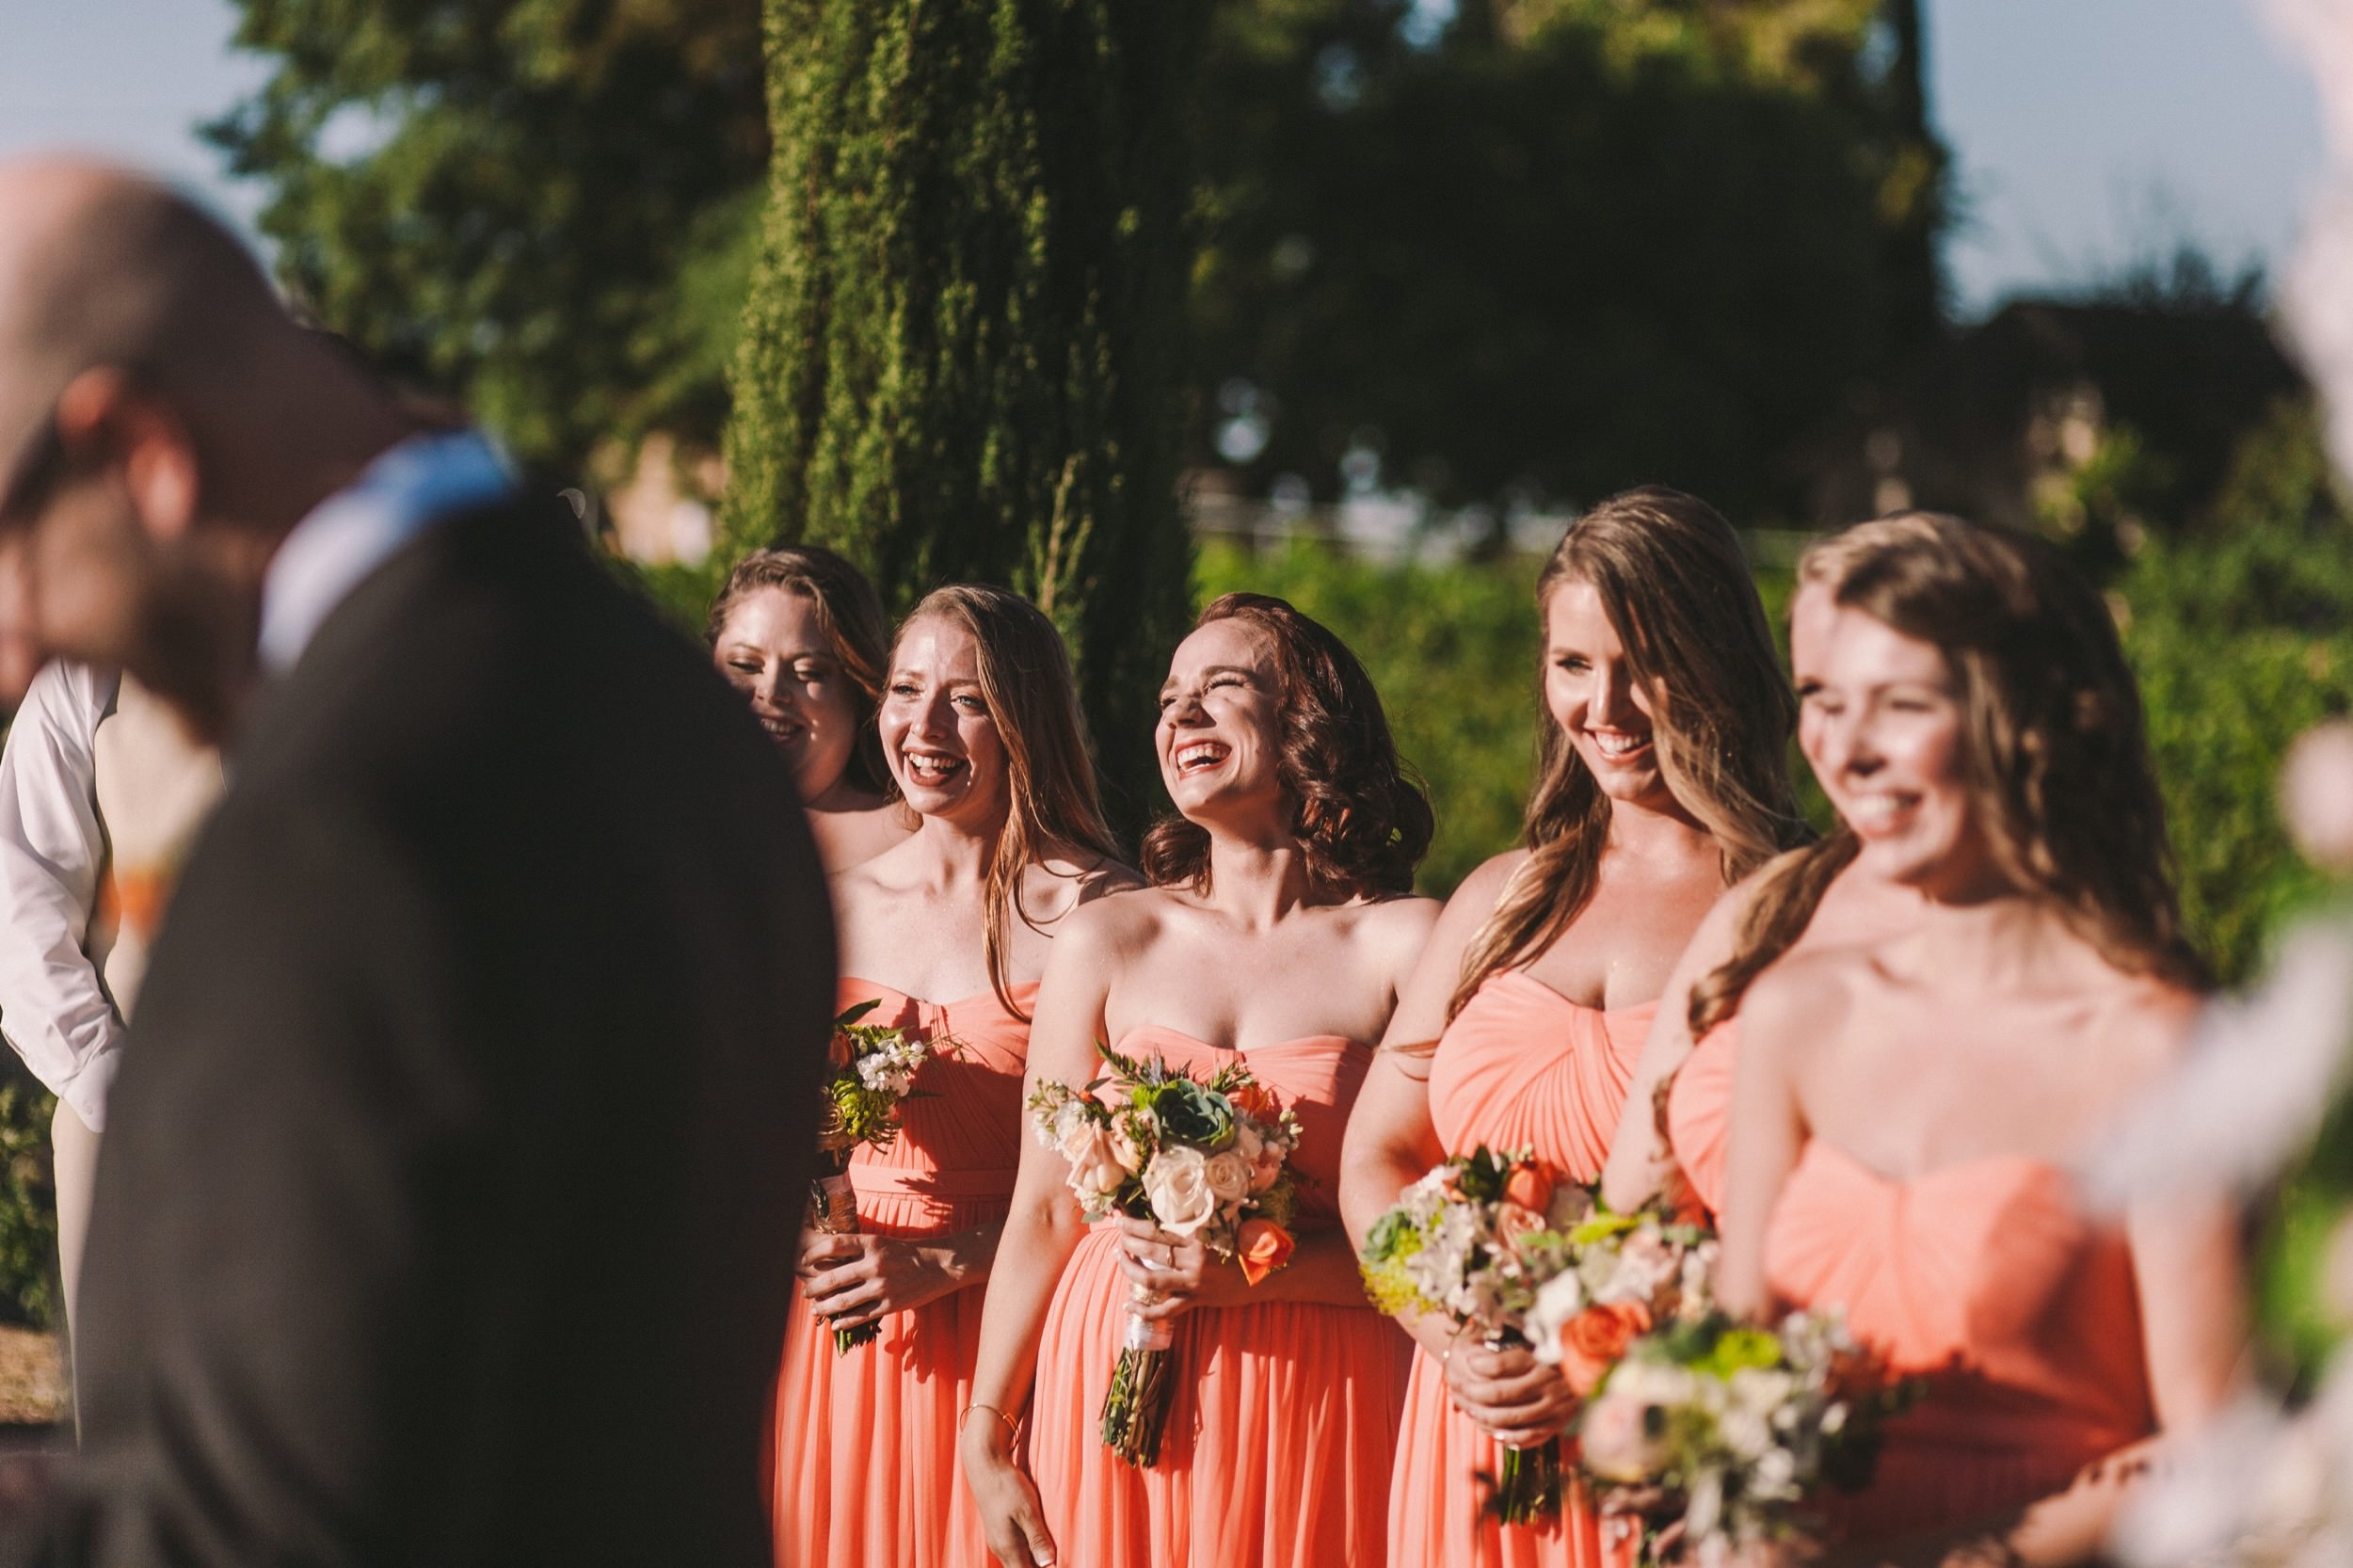 Bridesmaids Laughing During Outdoor Wedding Ceremony